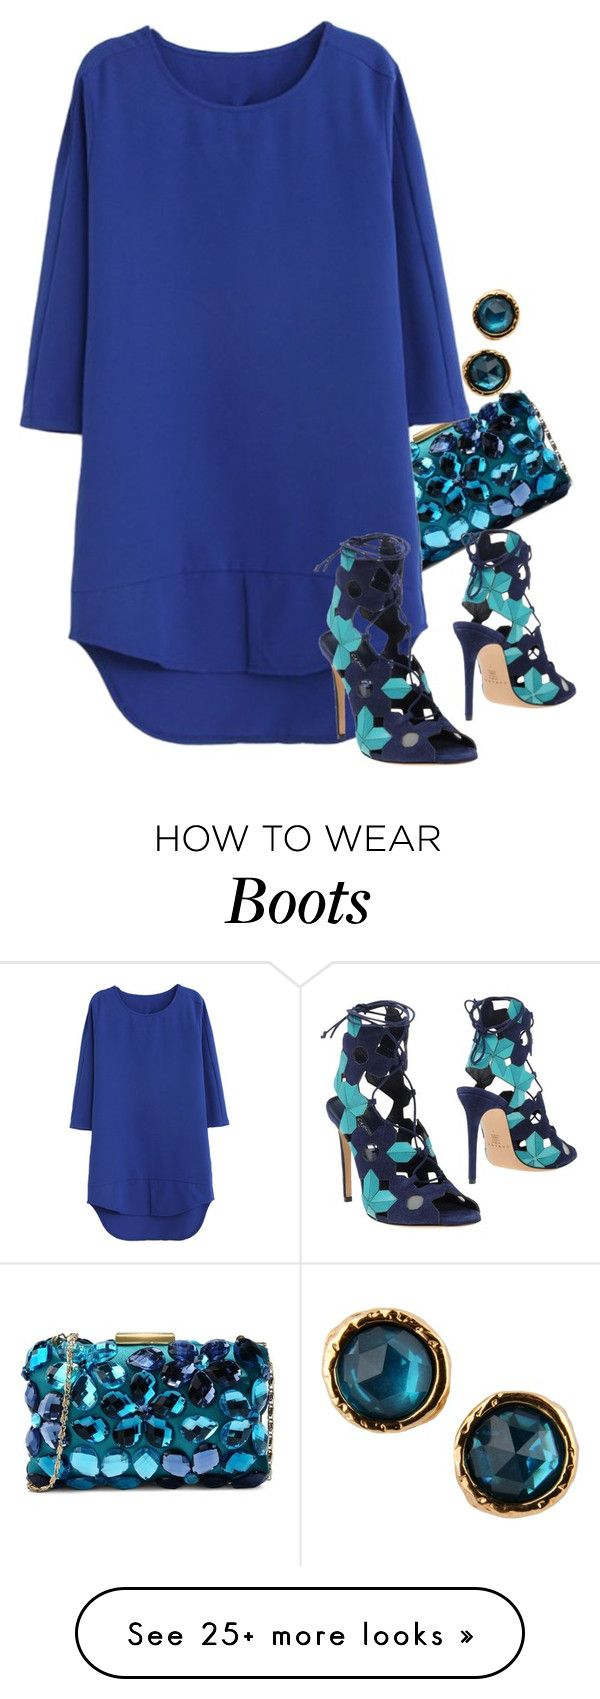 """""""blue bubbles"""" by ele88na on Polyvore featuring Love Moschino, WithChic, Casadei, Marc by Marc Jacobs, women's clothing, women, female, woman, misses and juniors"""